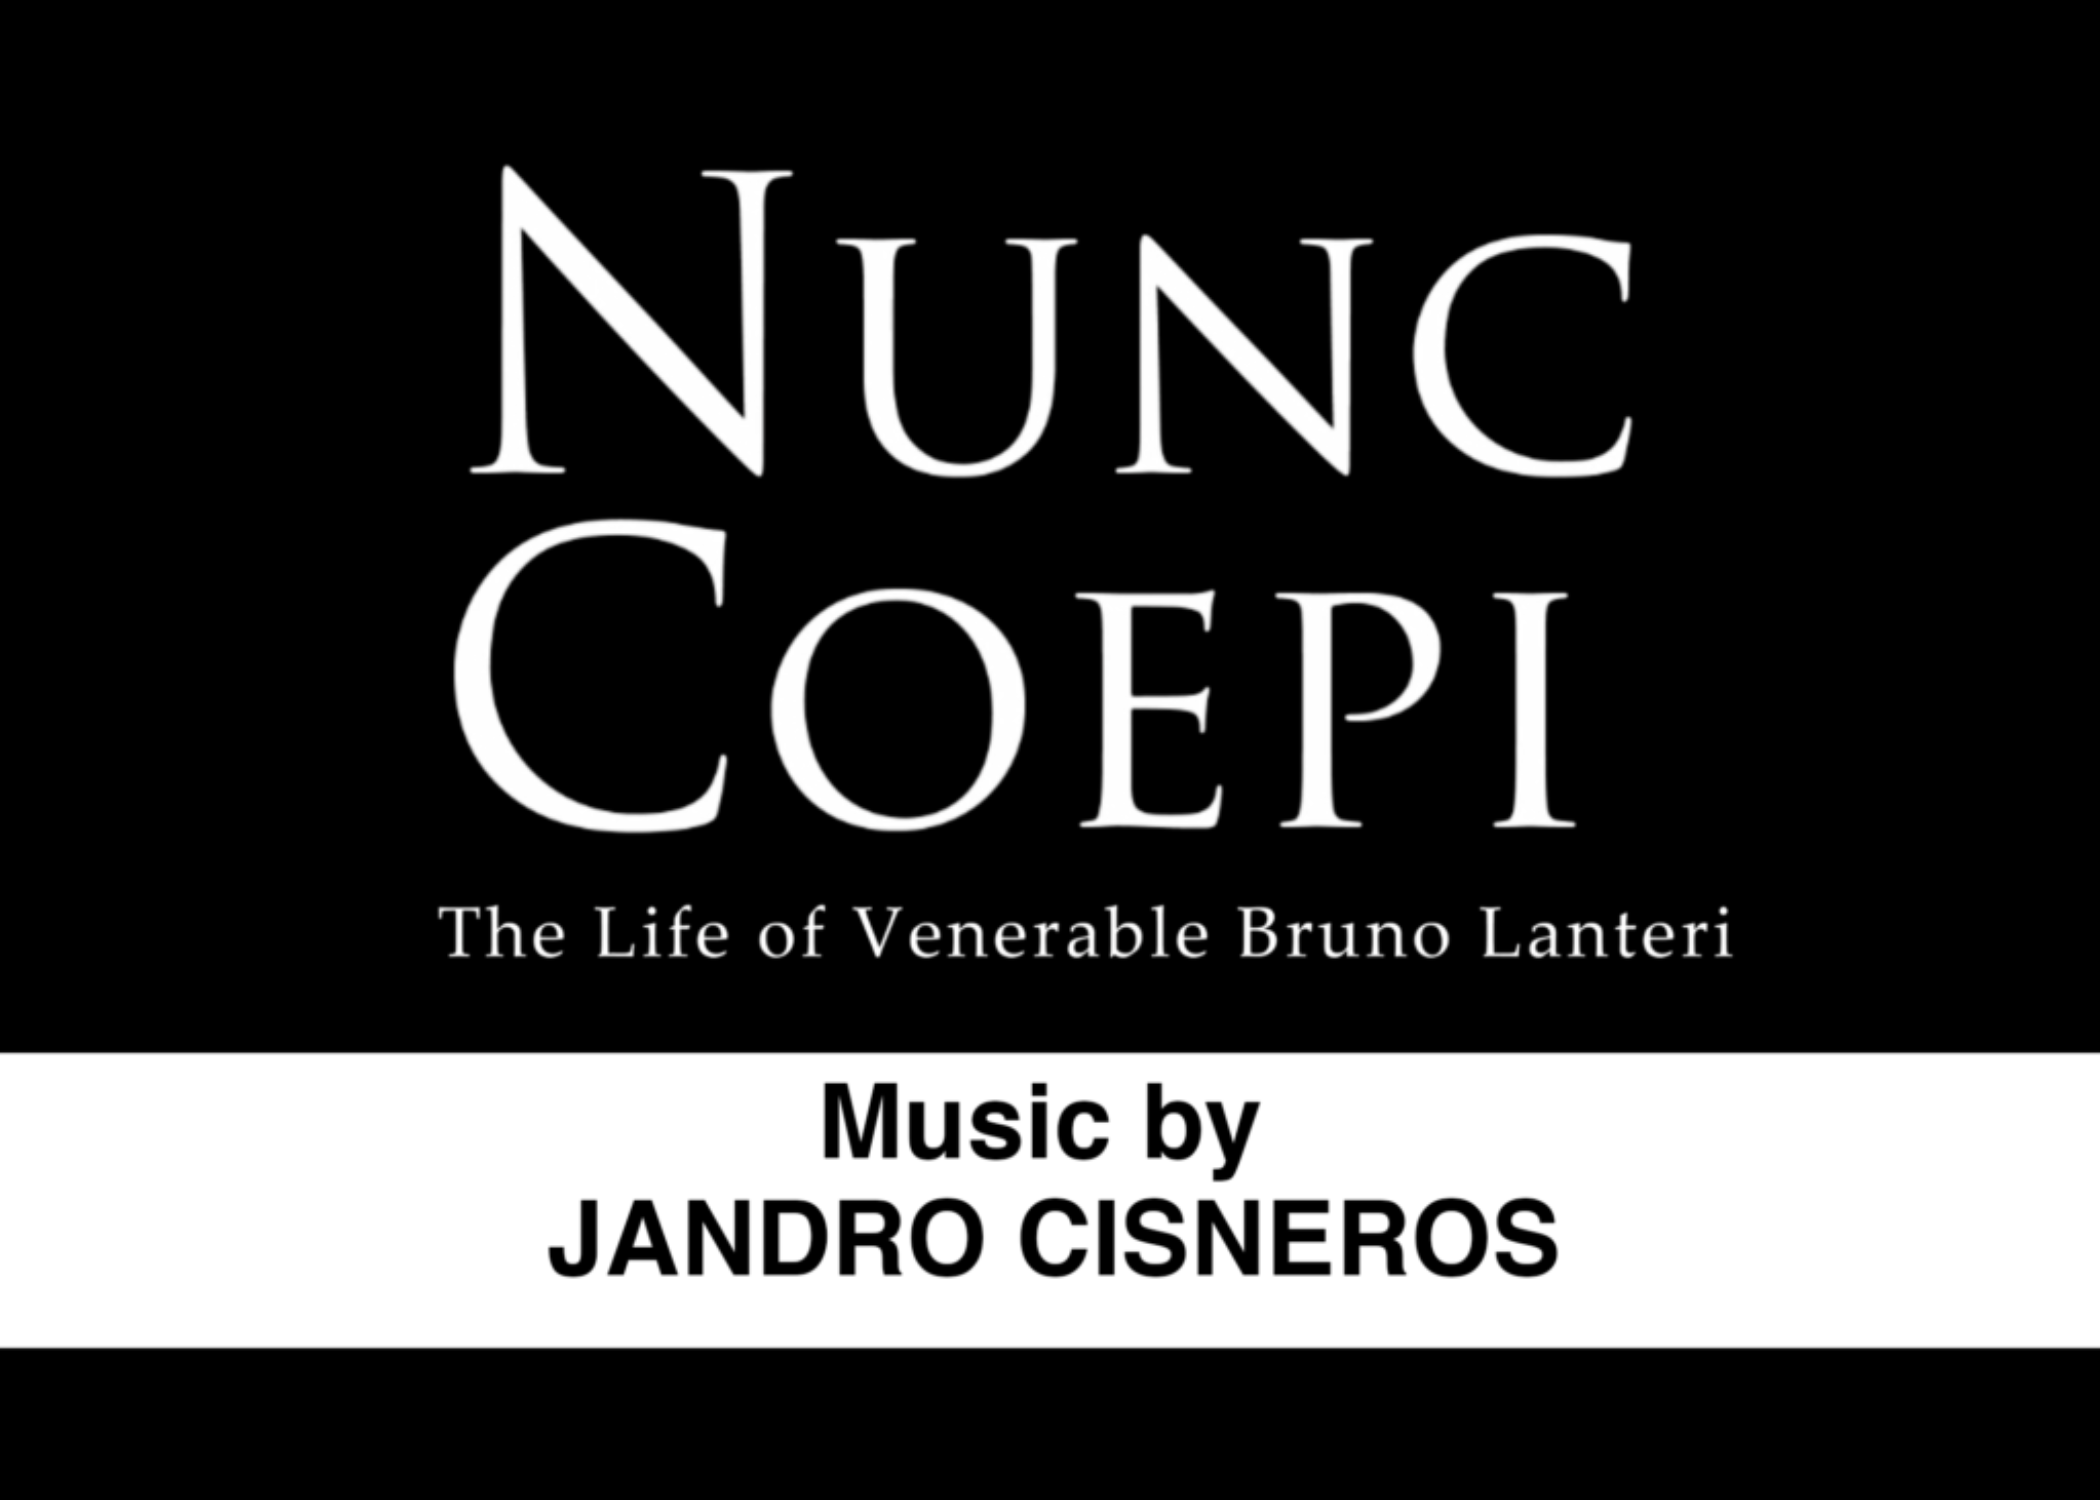 Nunc Coepi (Now I Begin) The Life of Venerable Bruno Lanteri, Music by Jandro